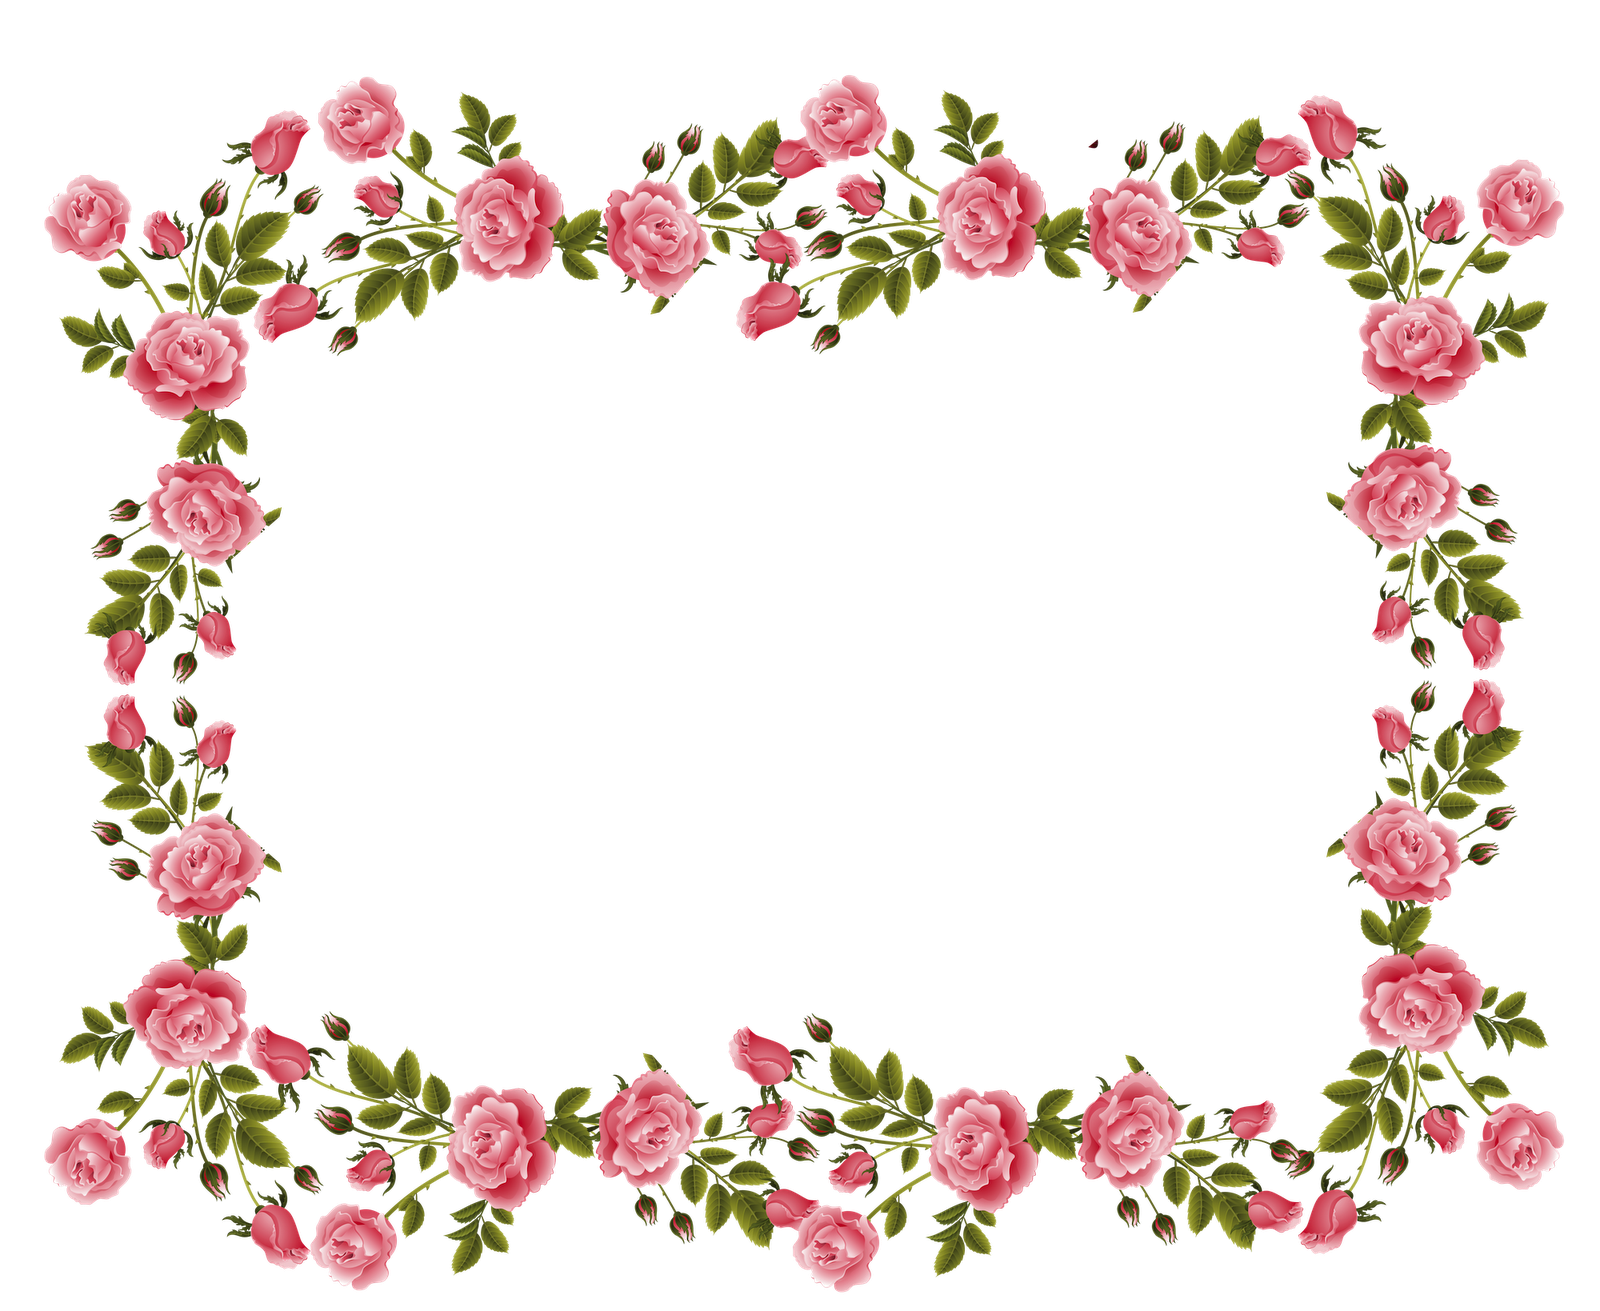 Rose border jaxstorm realverse. Clipart cross patterned